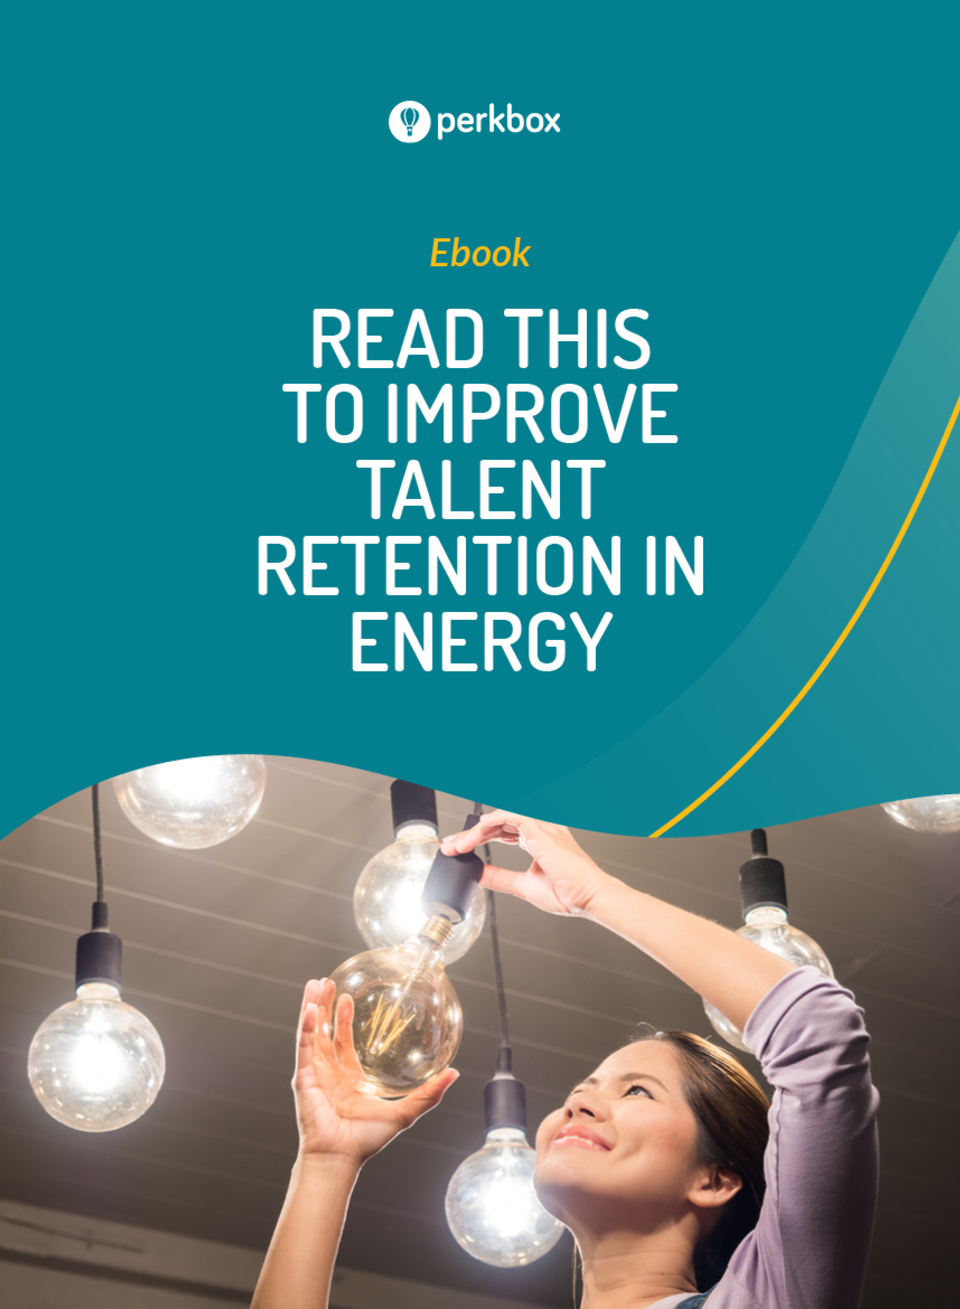 Read this to improve talent retention in Energy